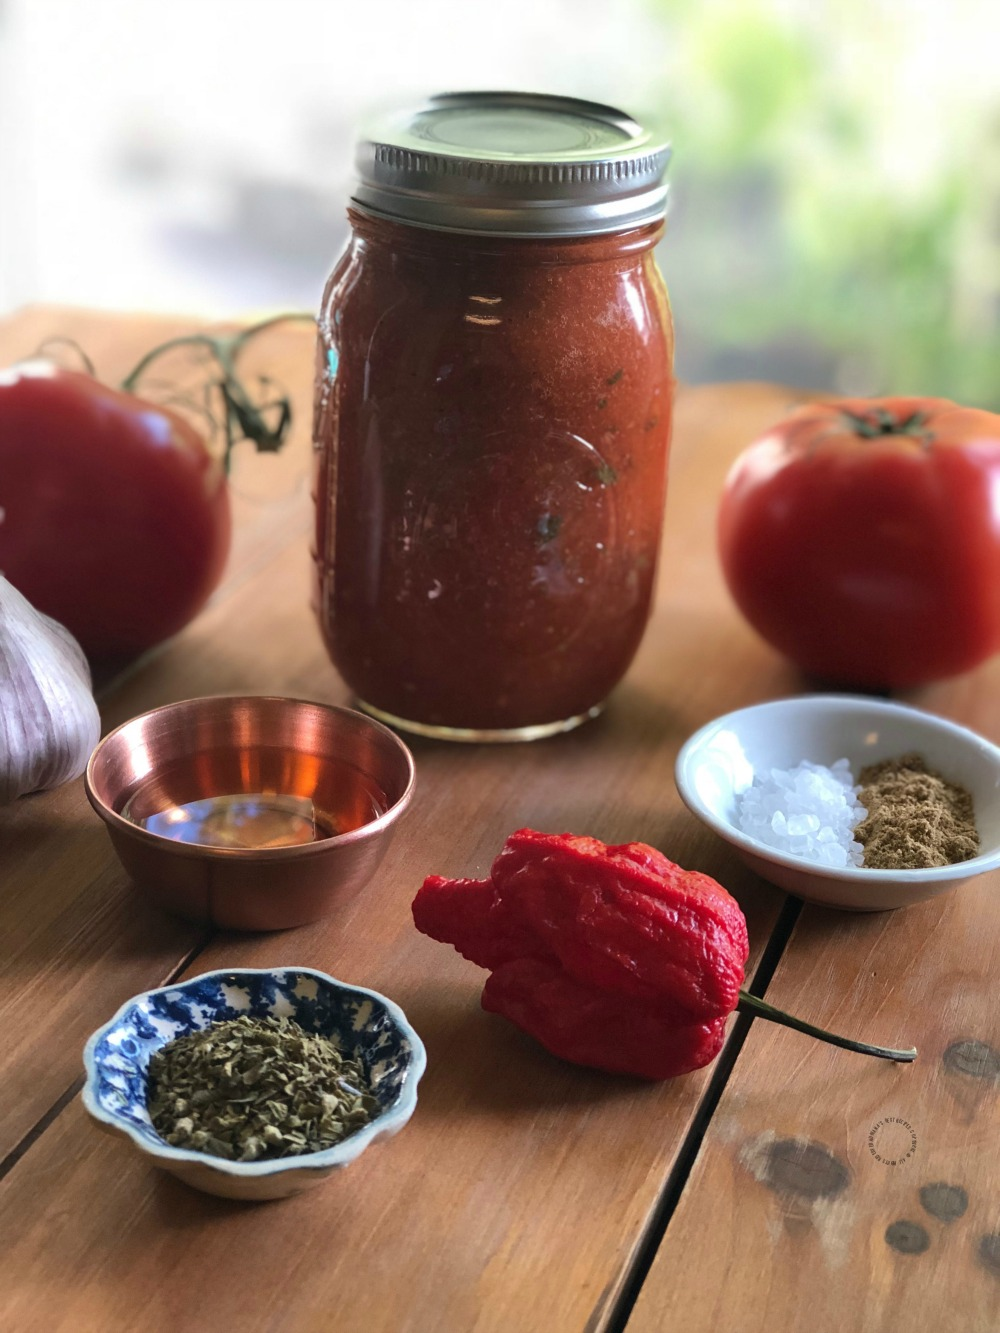 This recipe for the Roasted Carolina Reaper Salsa is perfect for canning